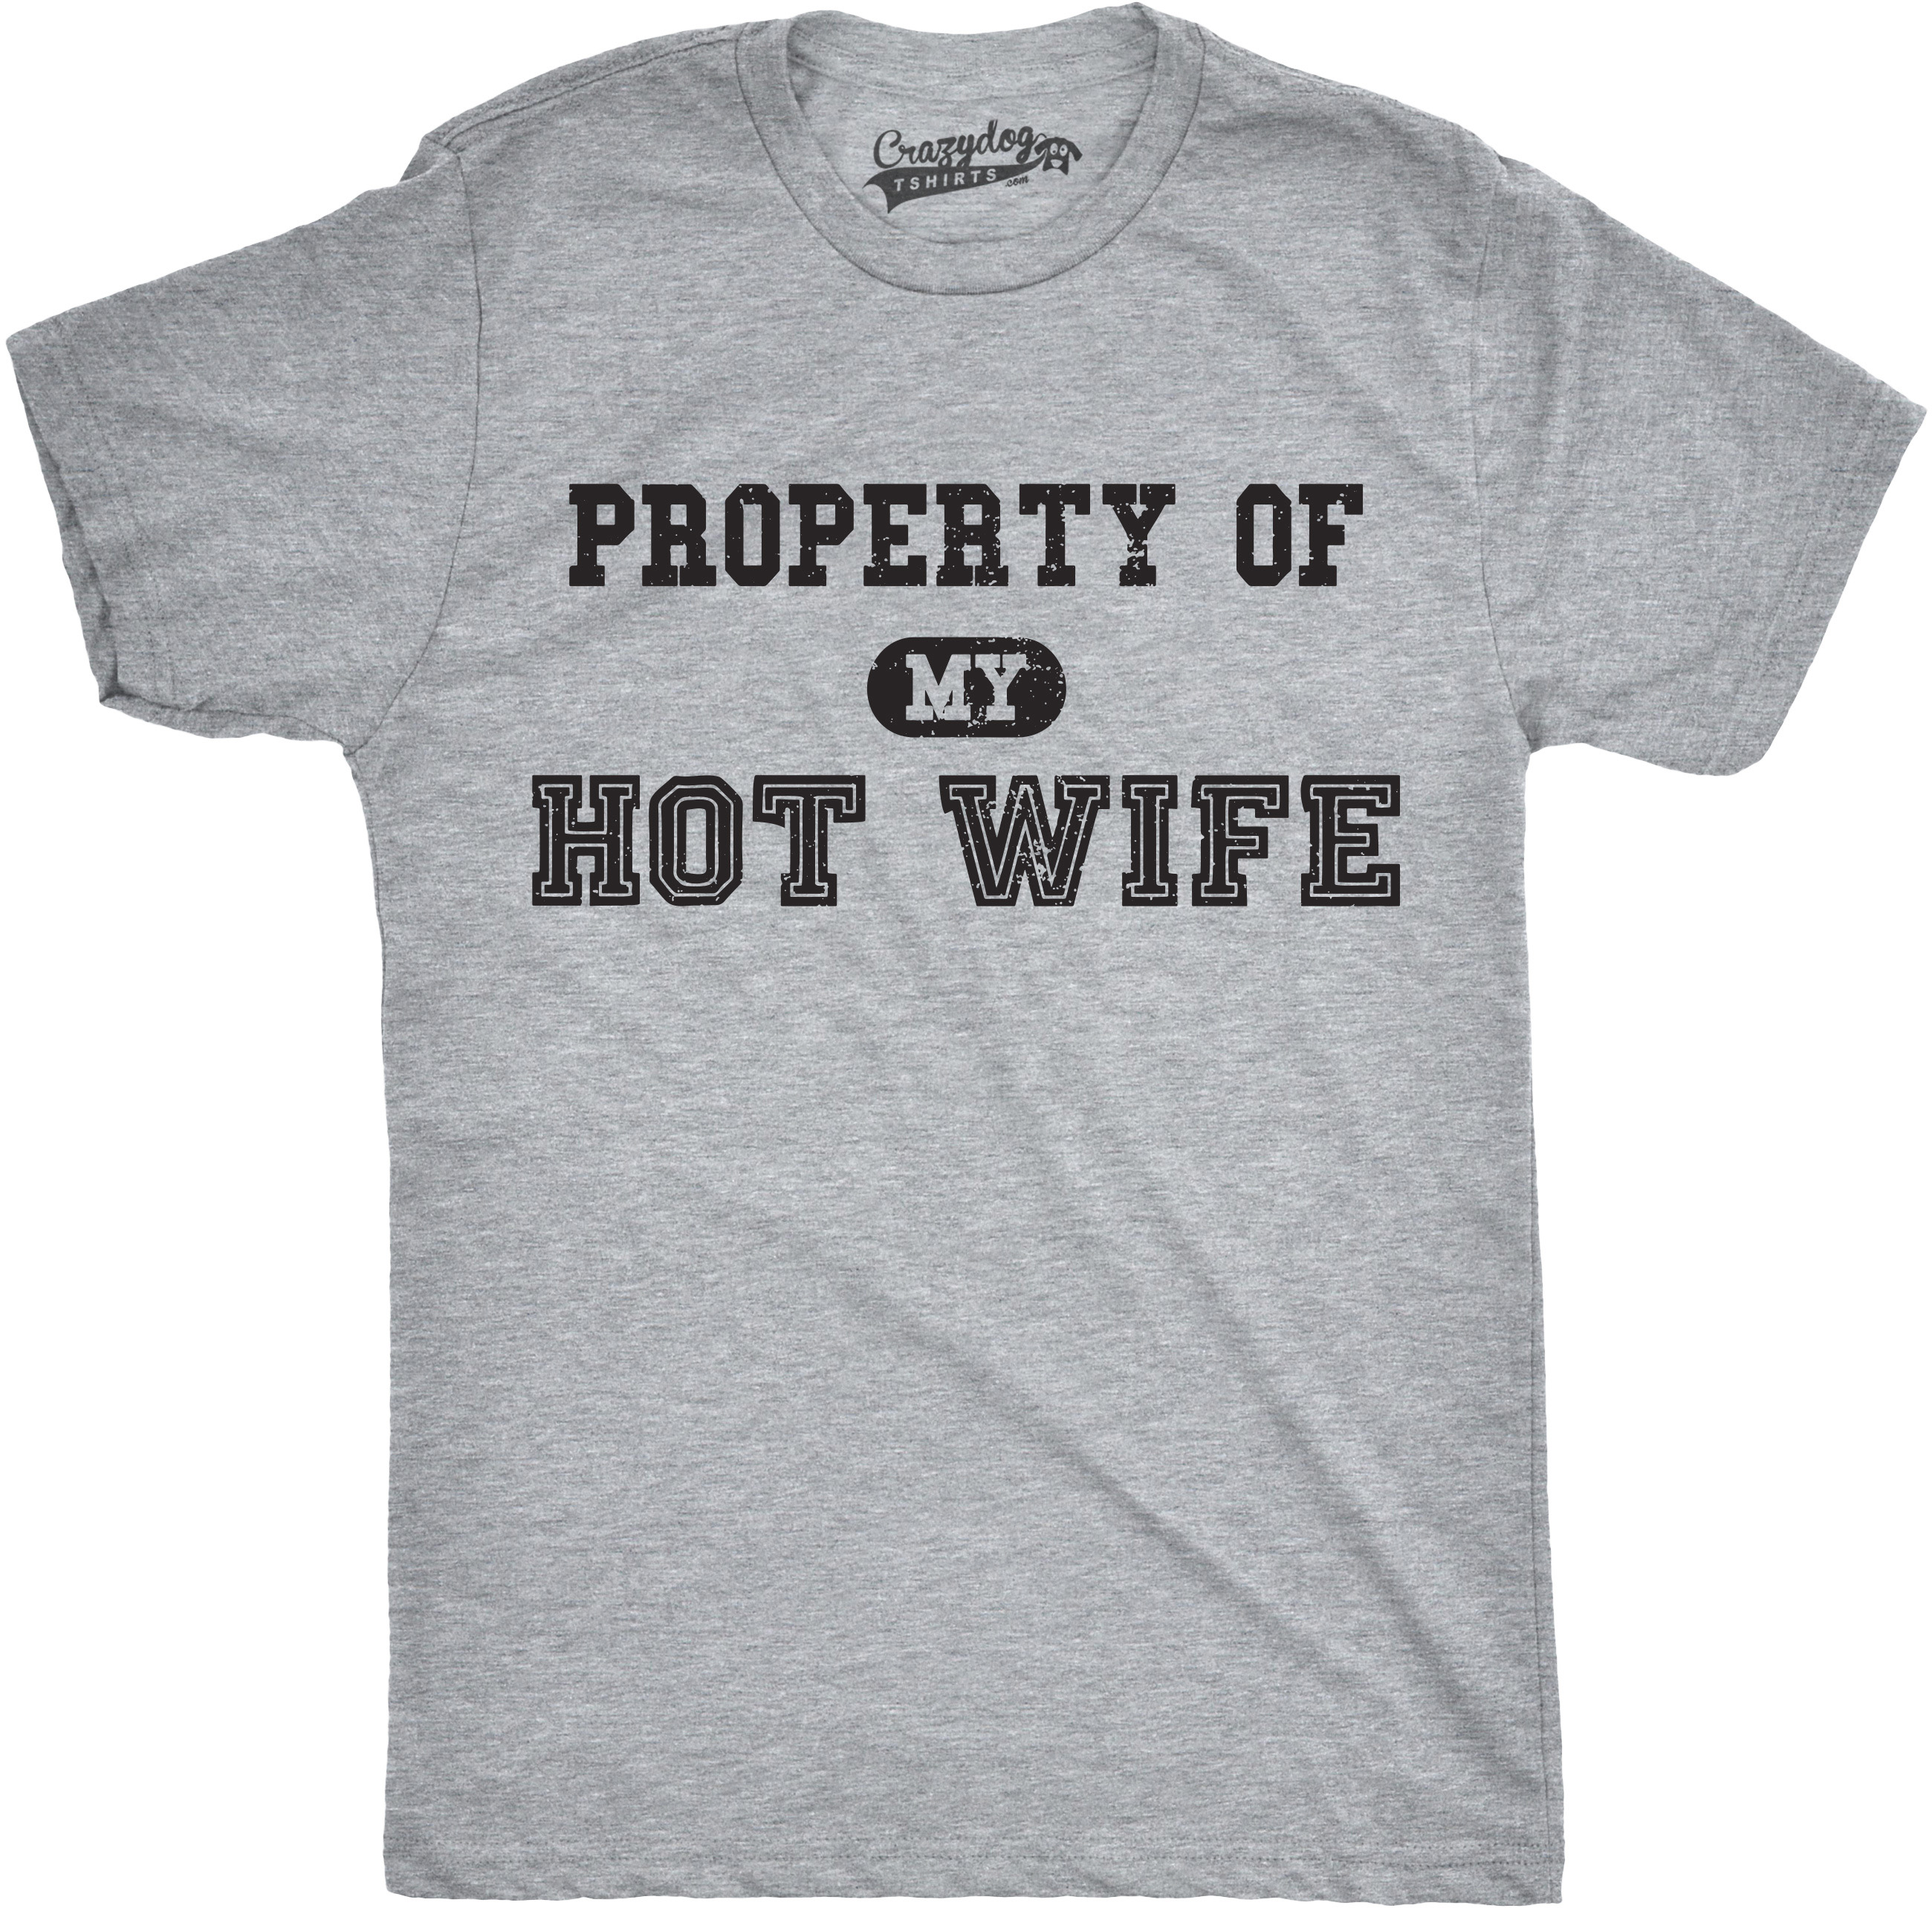 b5f3126db Mens Property of My Hot Wife Funny Wedding Valentines Day Anniversary T  shirt (Grey) S